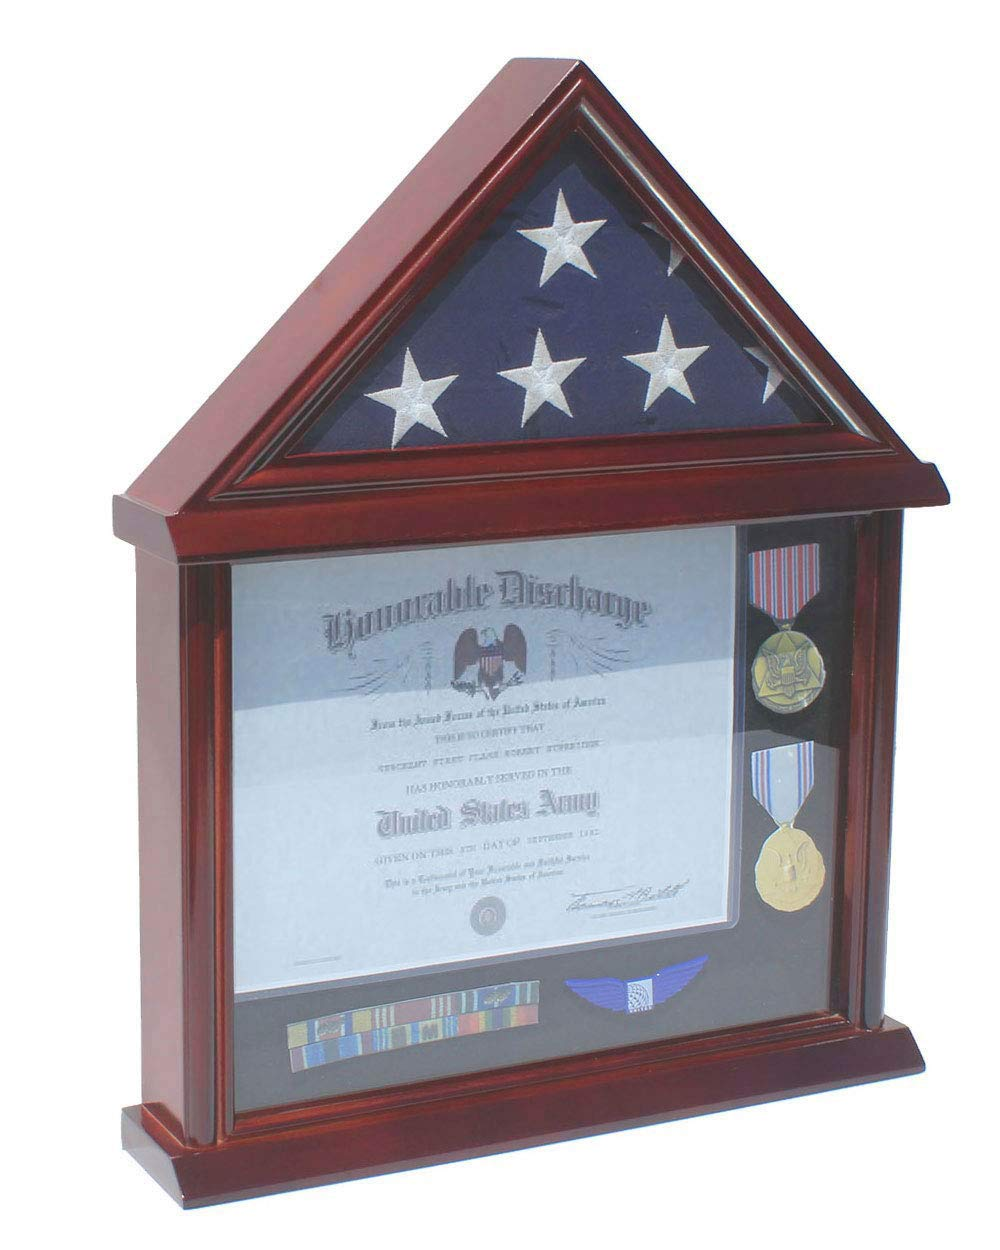 Flag Display Case Certificate Frame Document Holder Stand for 3' X 5' Folded Flag, Military Medal Pin Shadow Box by DisplayGifts